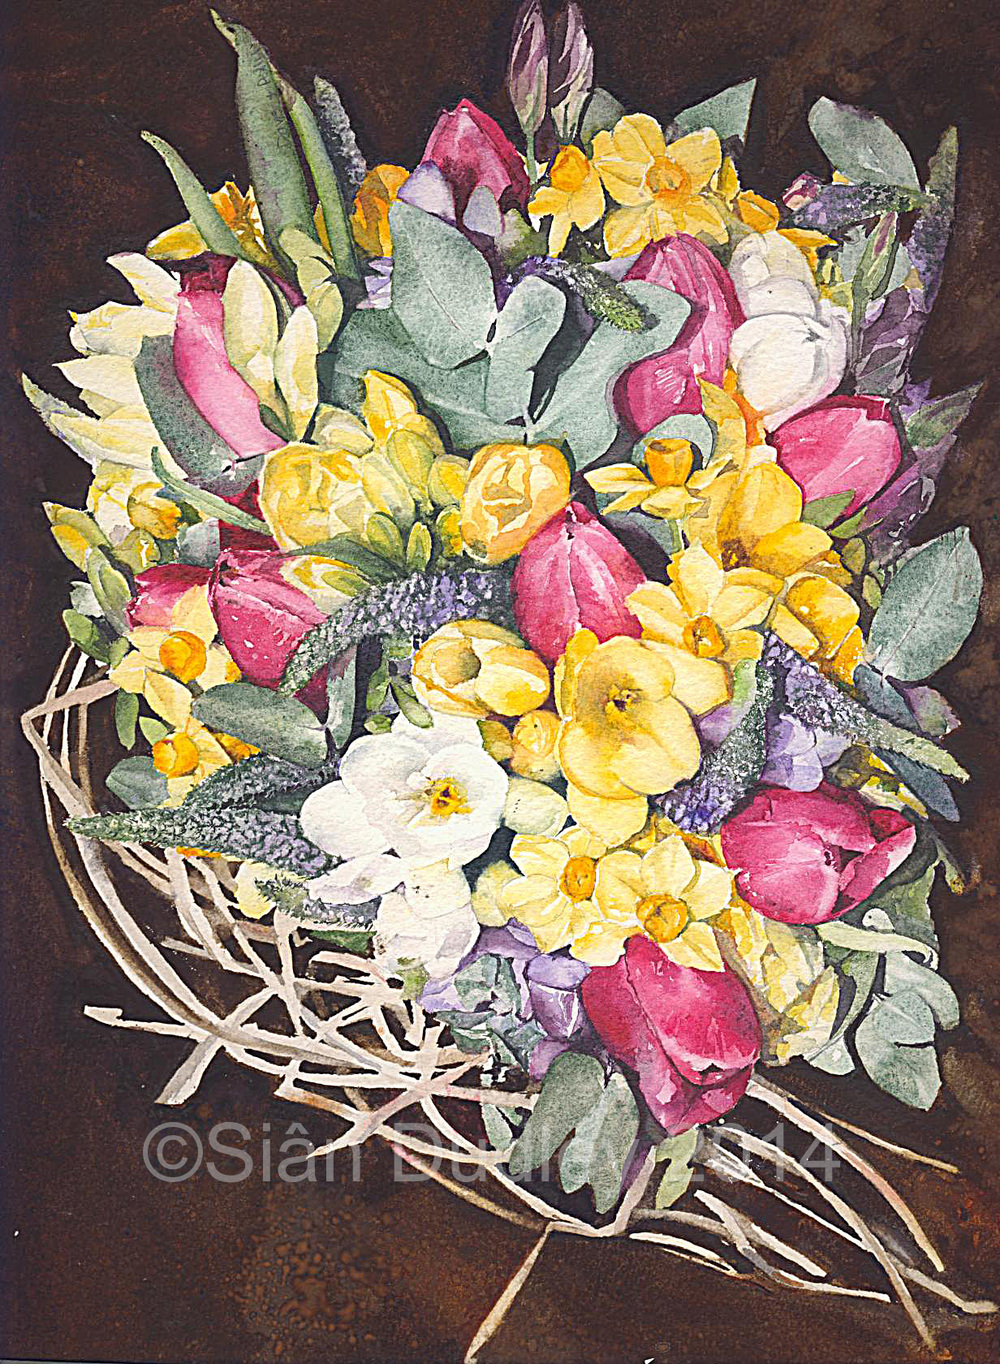 Sue's bouquet.jpg